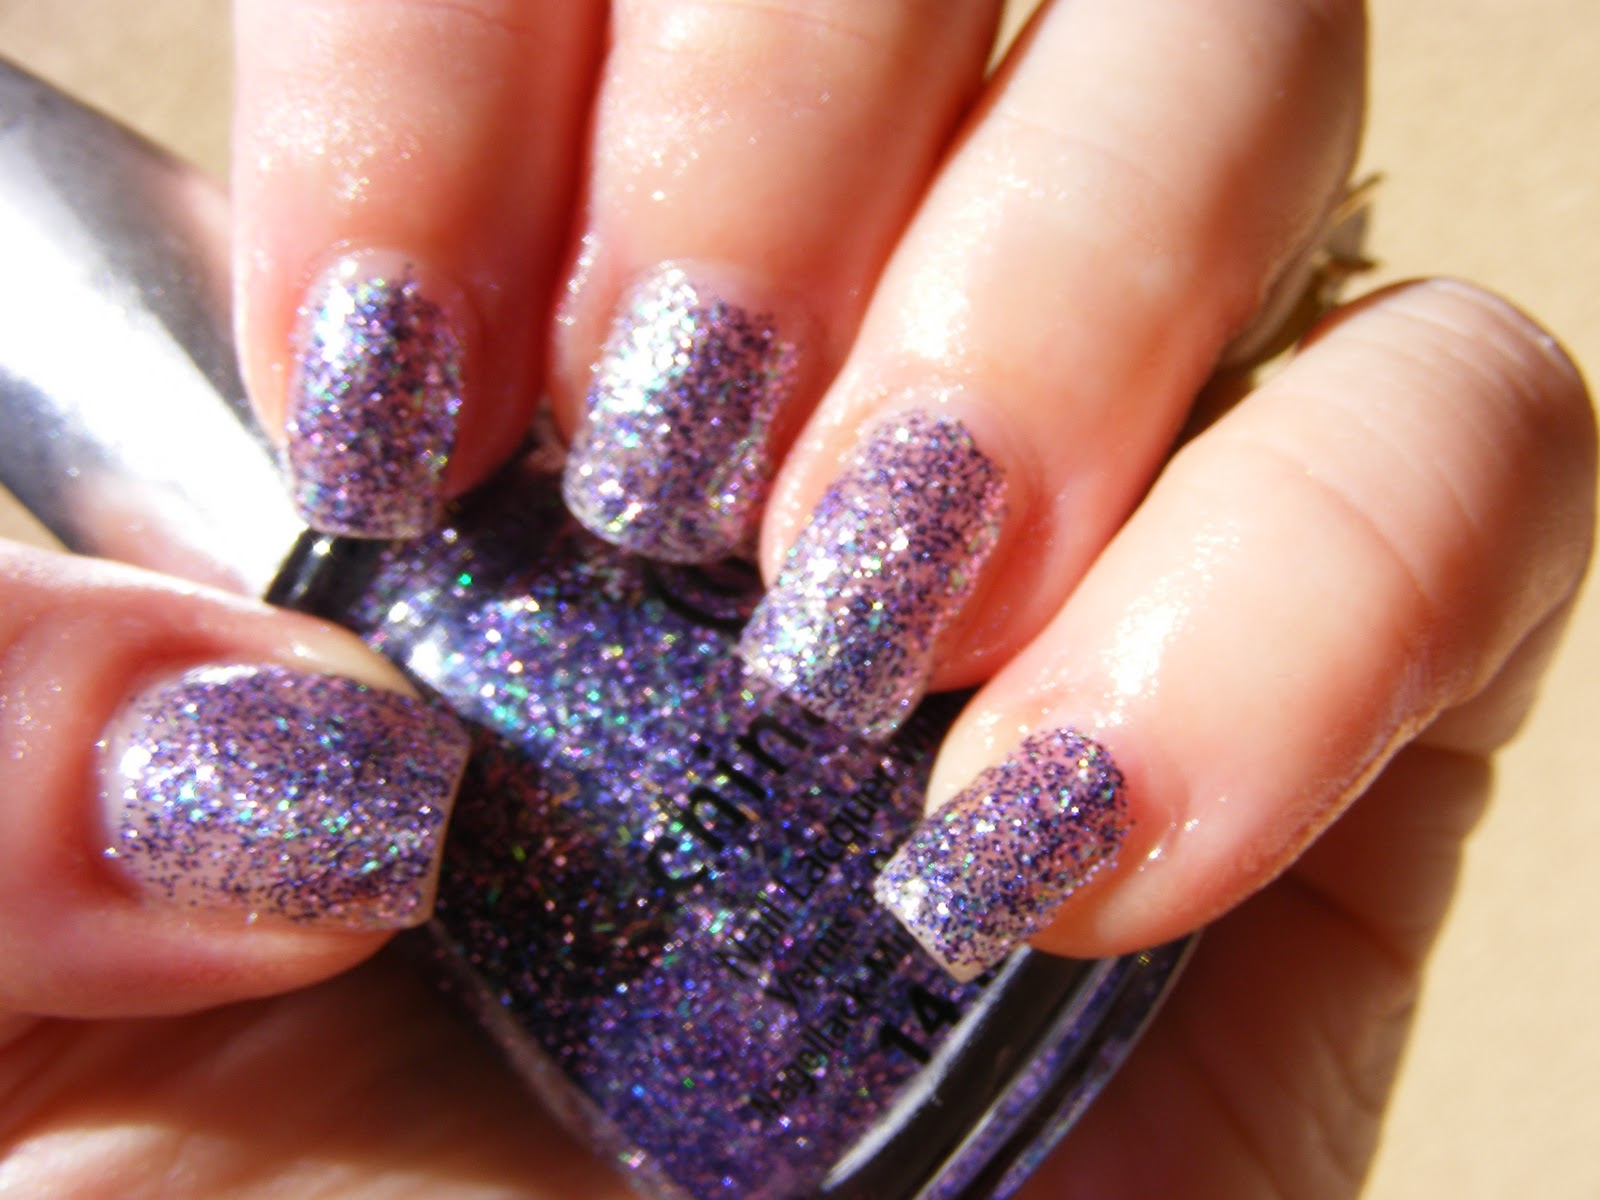 This Polish Is A Complex Collection Of Purple Glitter In Two Diffe Sizes Micro And Super Even The Bar Which Flashes From Teal Green To